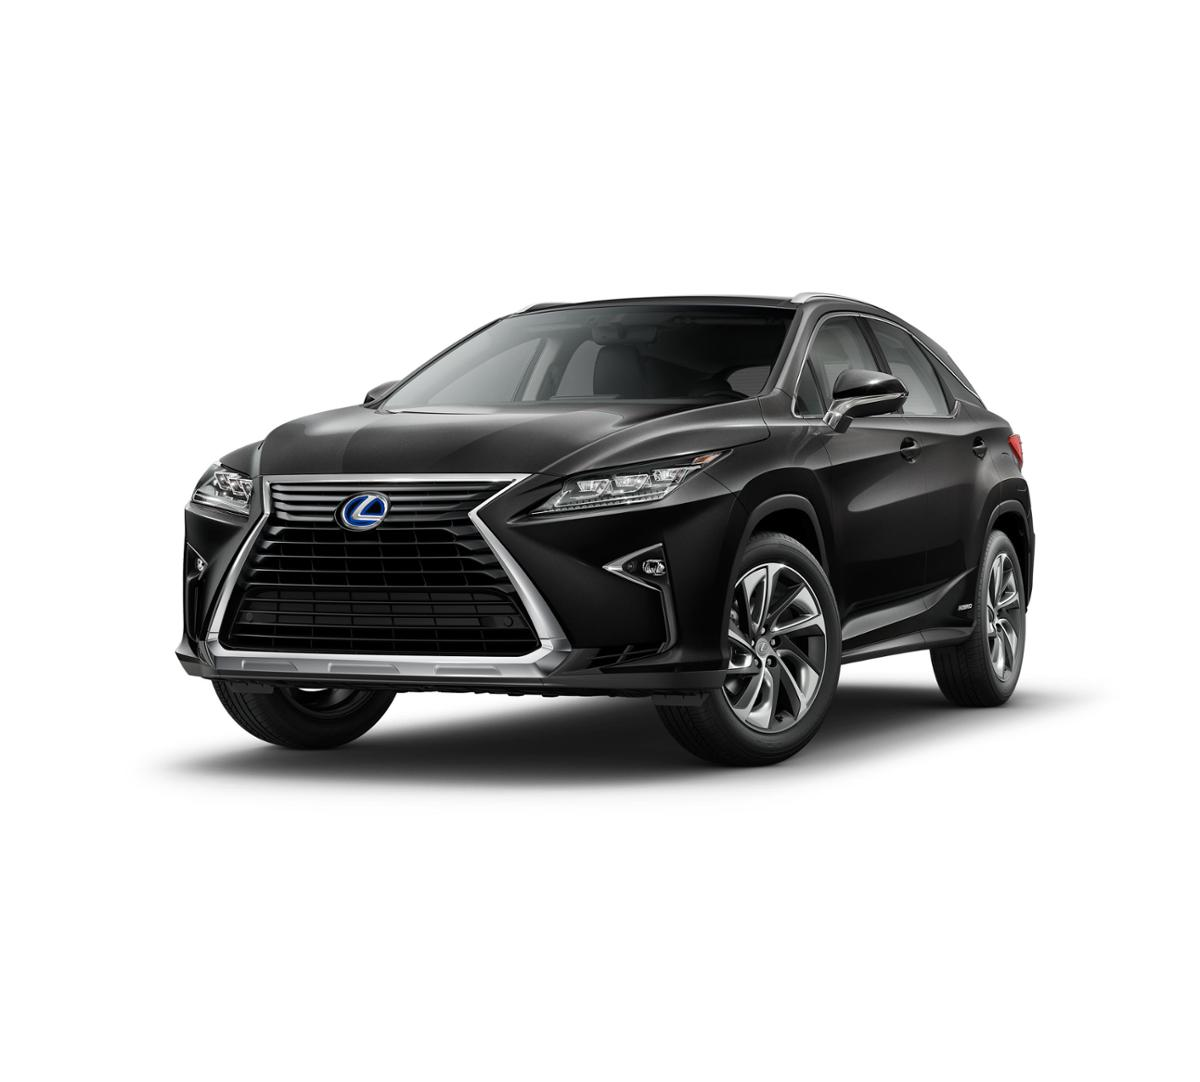 2018 Lexus RX 450h Vehicle Photo in Santa Monica, CA 90404